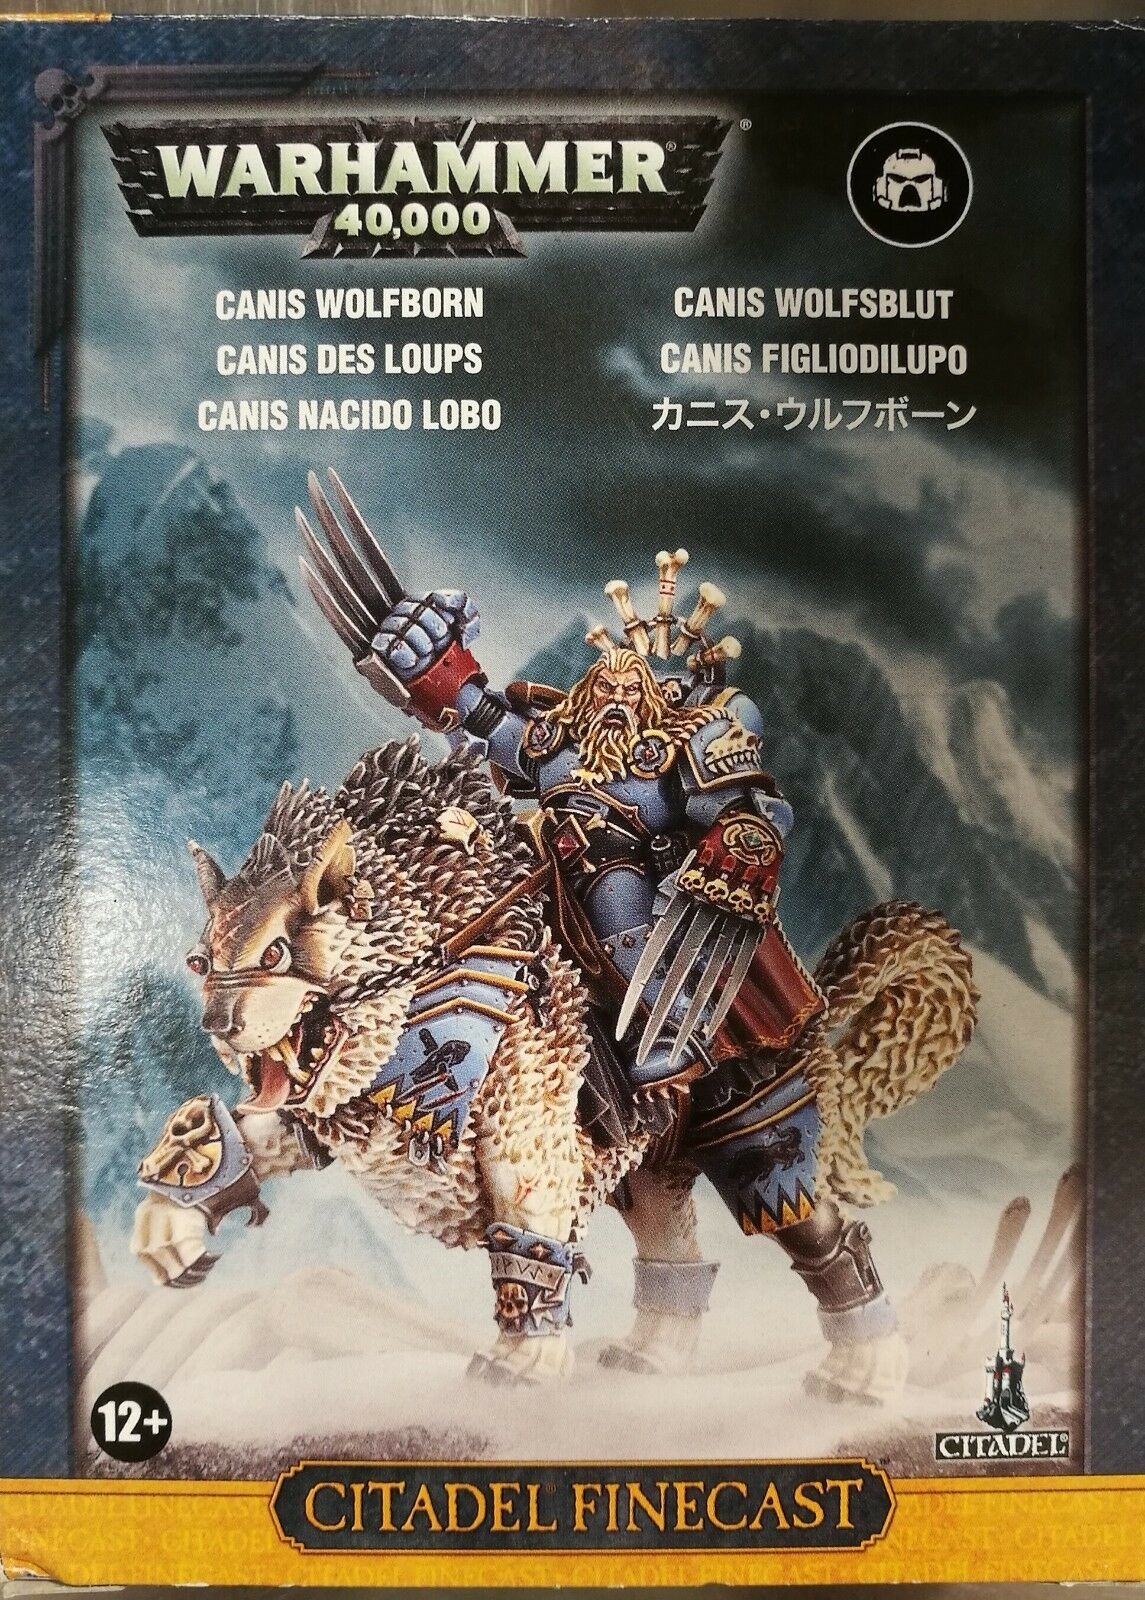 Warhammer - Canis Wolfborn - Canis Figliodilupo - Citadel Finecast - New